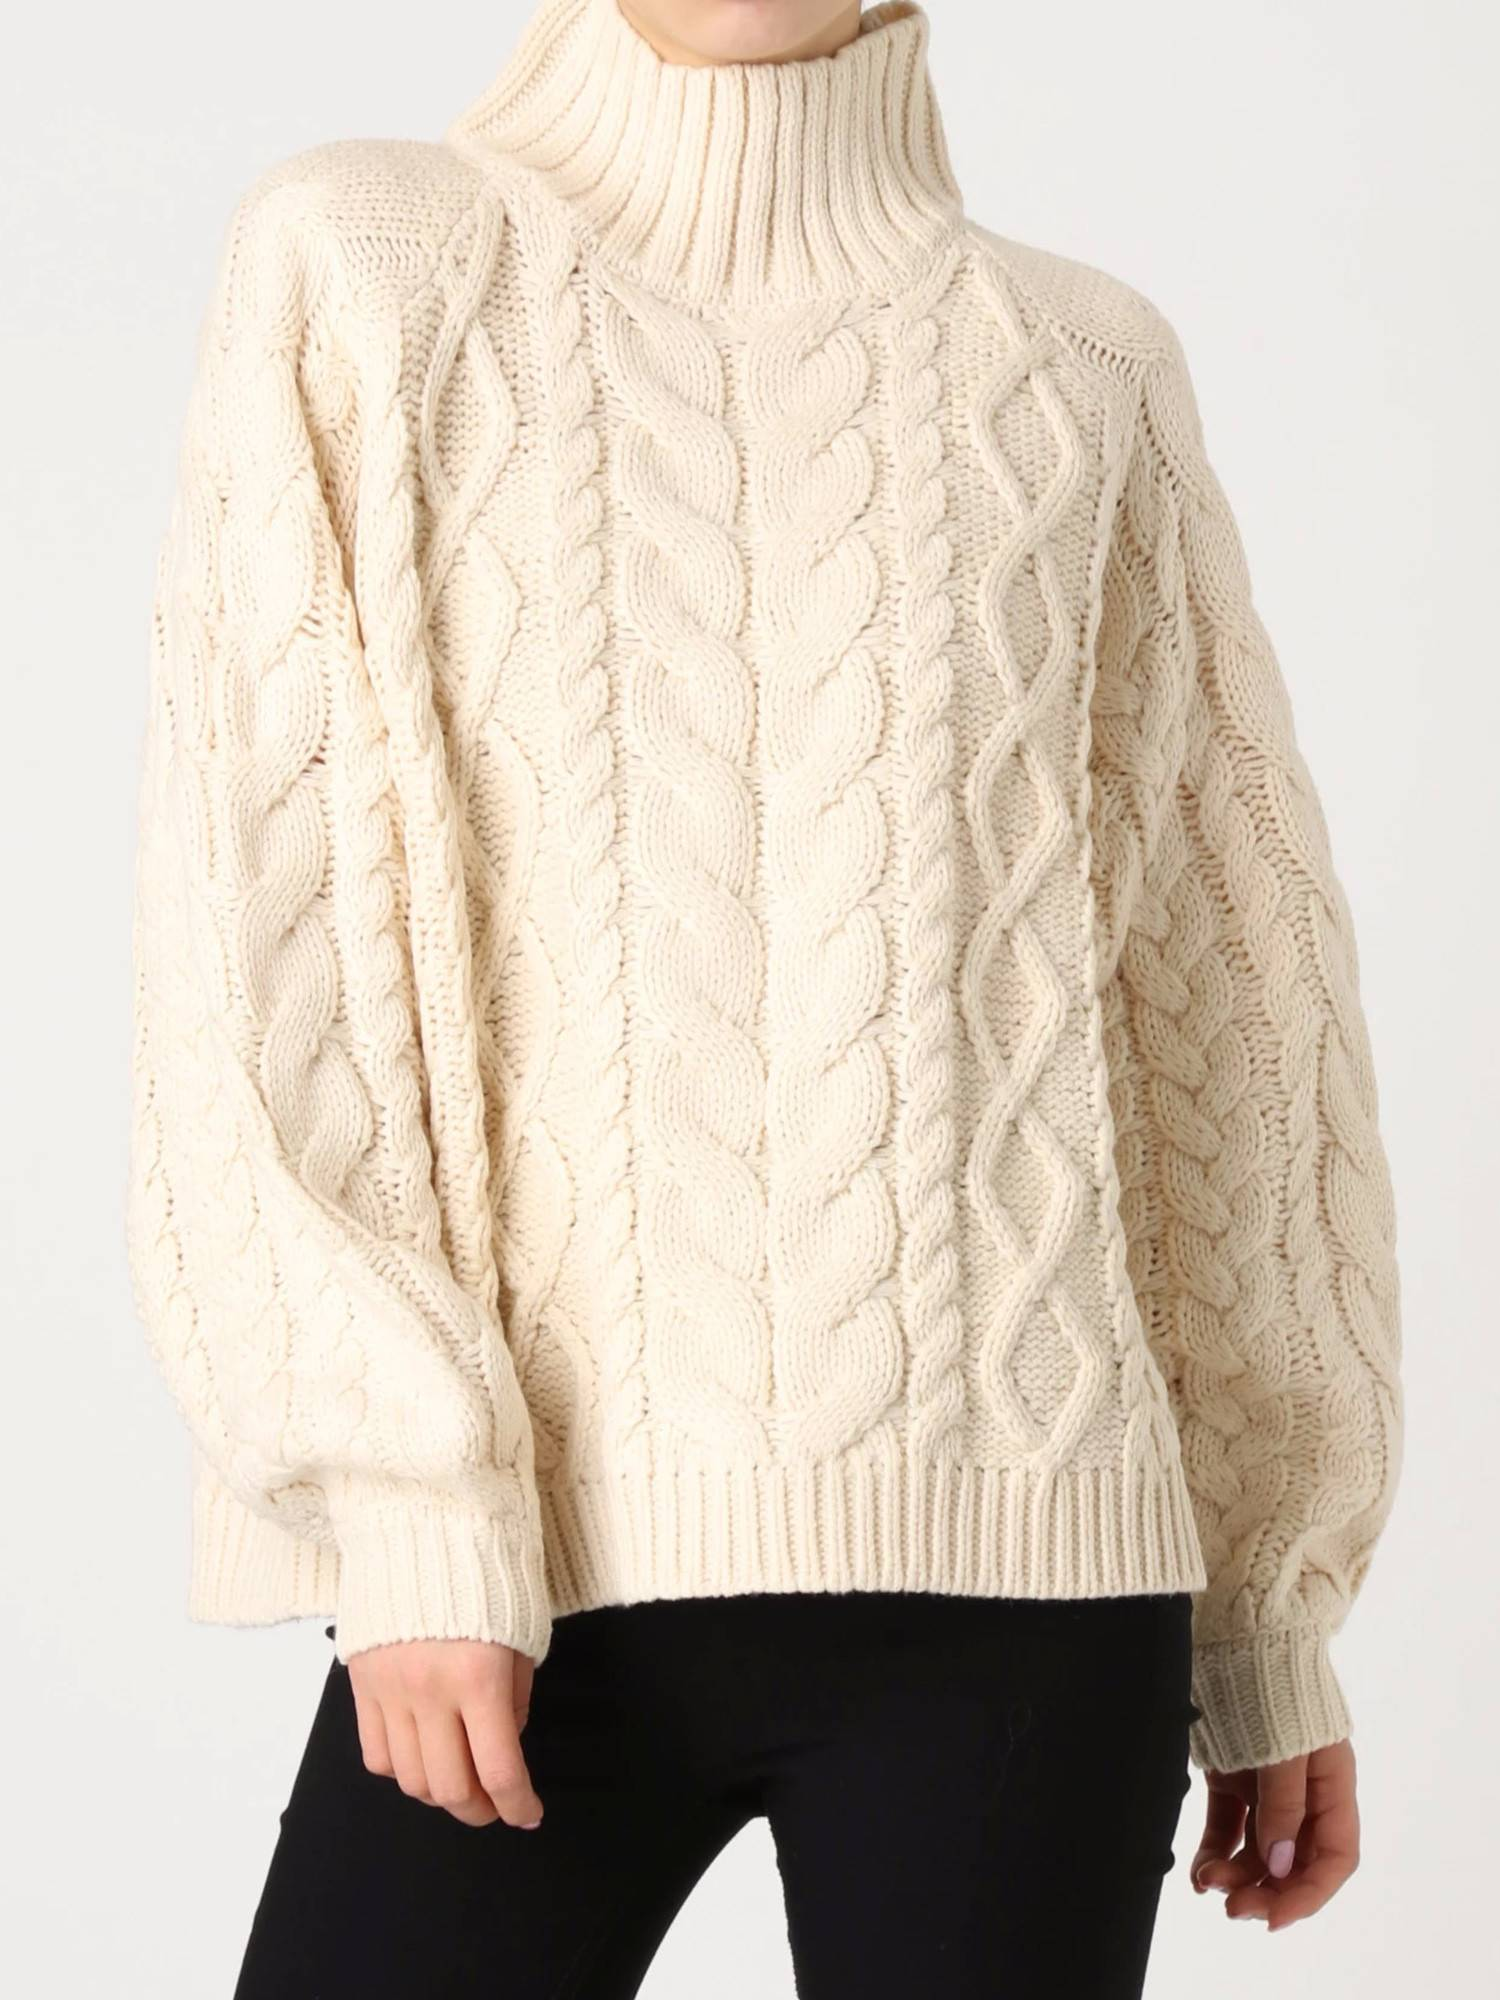 Bulky cable high-necked knit